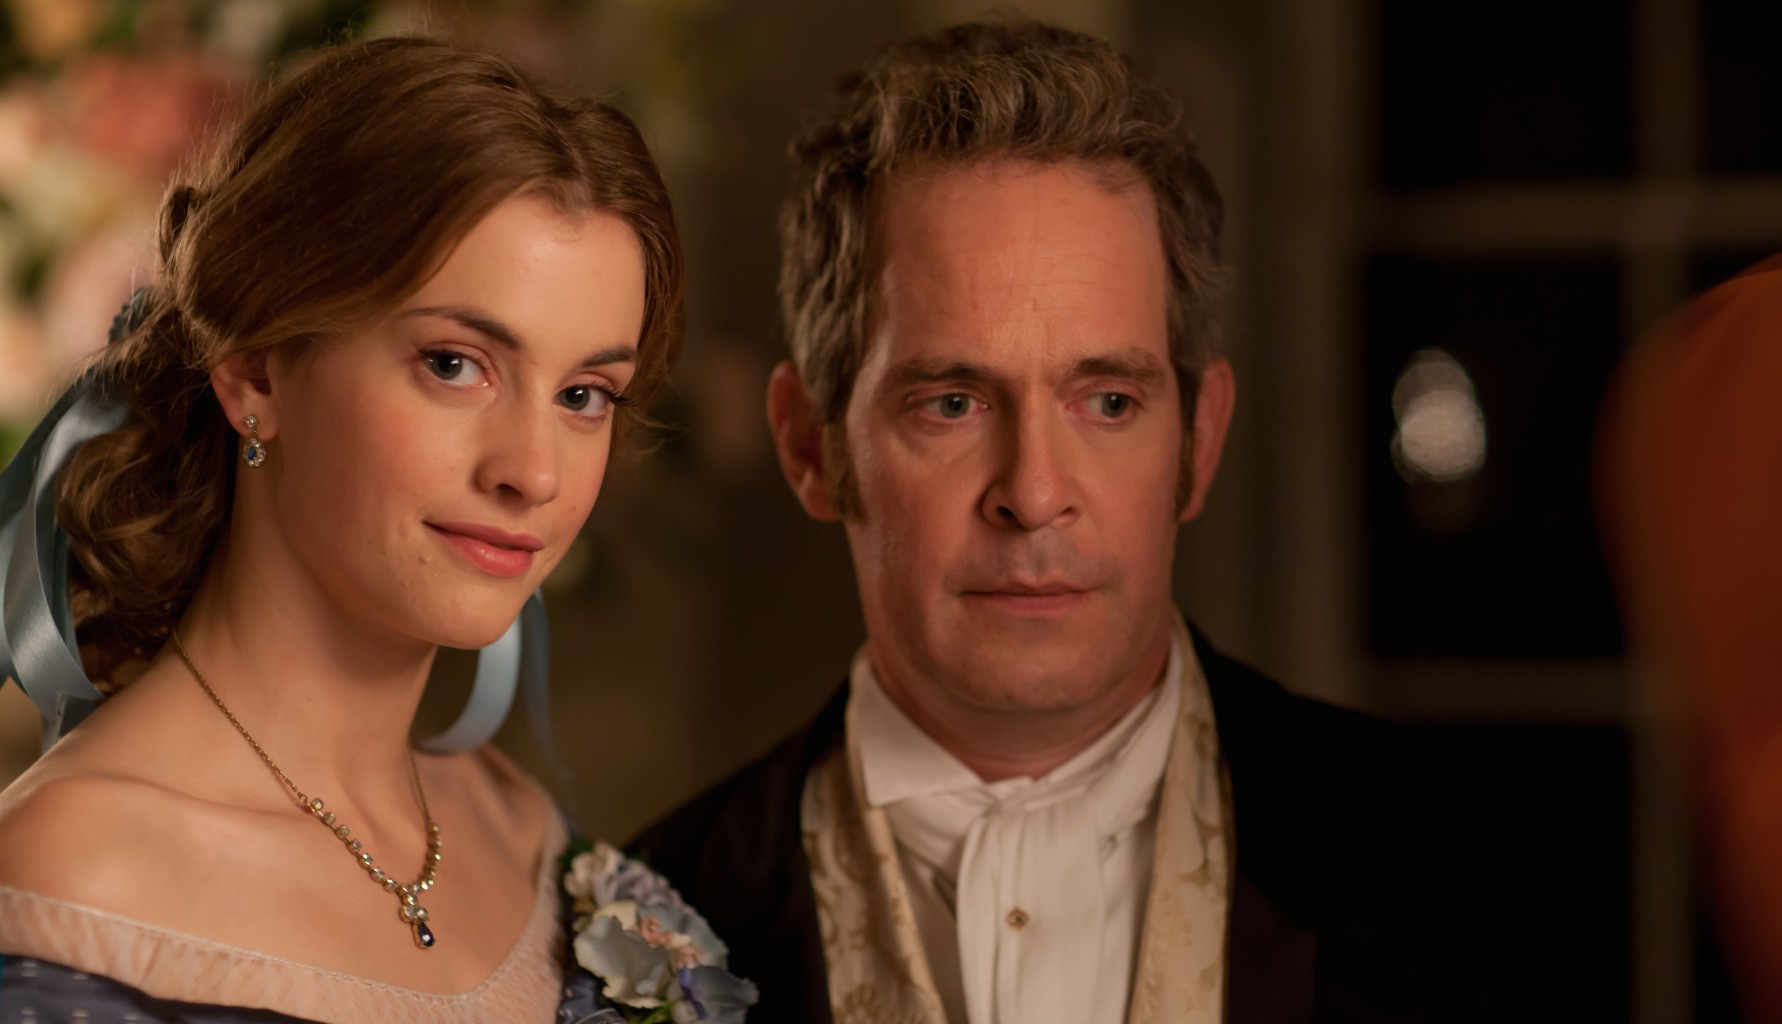 TOM HOLLANDER as Doctor Thorne and STEFANIE MARTINI as Mary Thorne.